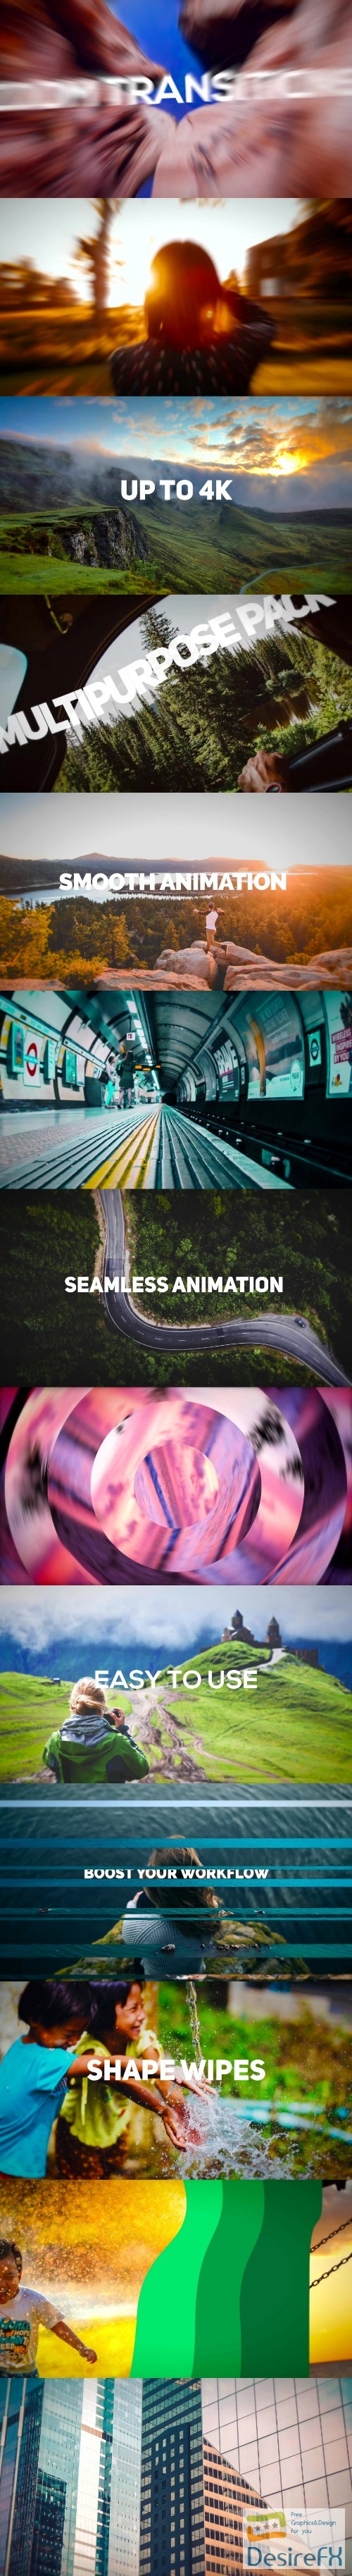 Desirefx com   Download Videohive 20406765 FCPX Transitions